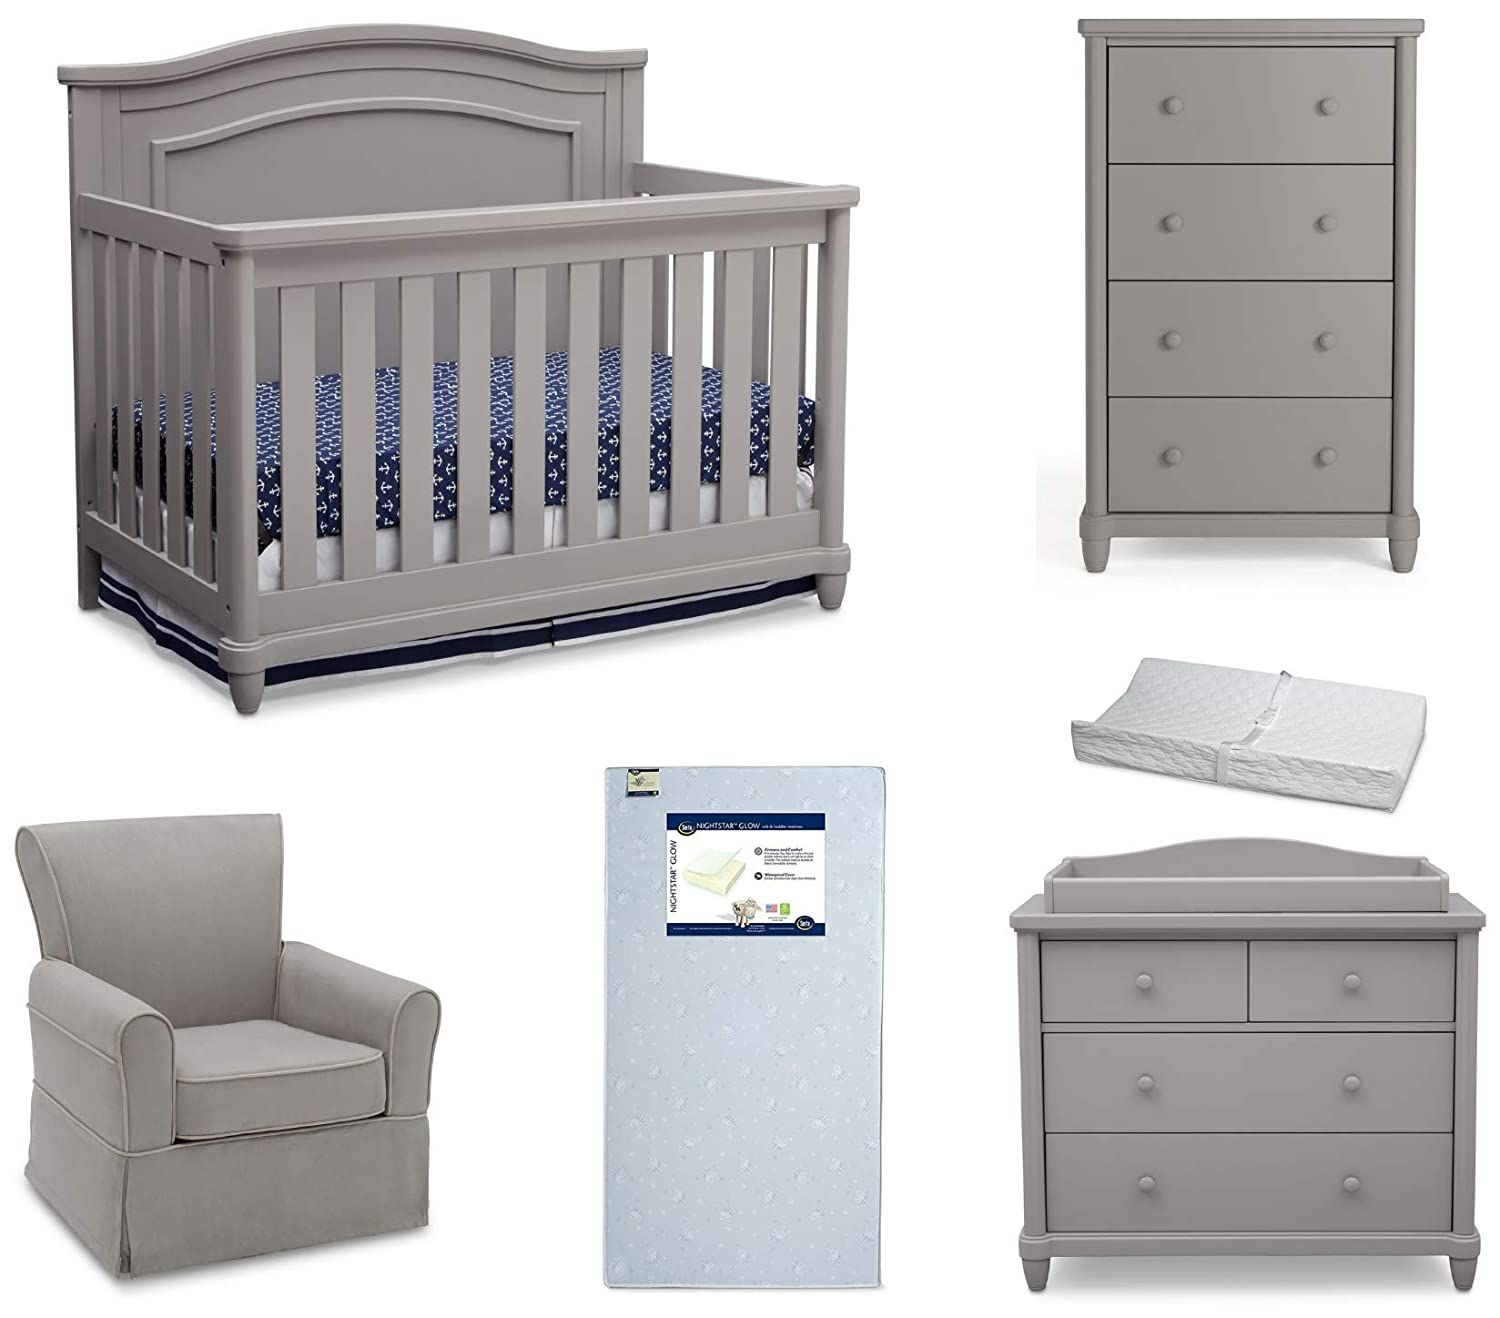 Simmons Kids Belmont 6-Piece Nursery Furniture Set | Includes: Convertible Baby Crib | Dresser with Changing Topper | Tall Chest | Glider | Crib Mattress | Changing Pad, Grey